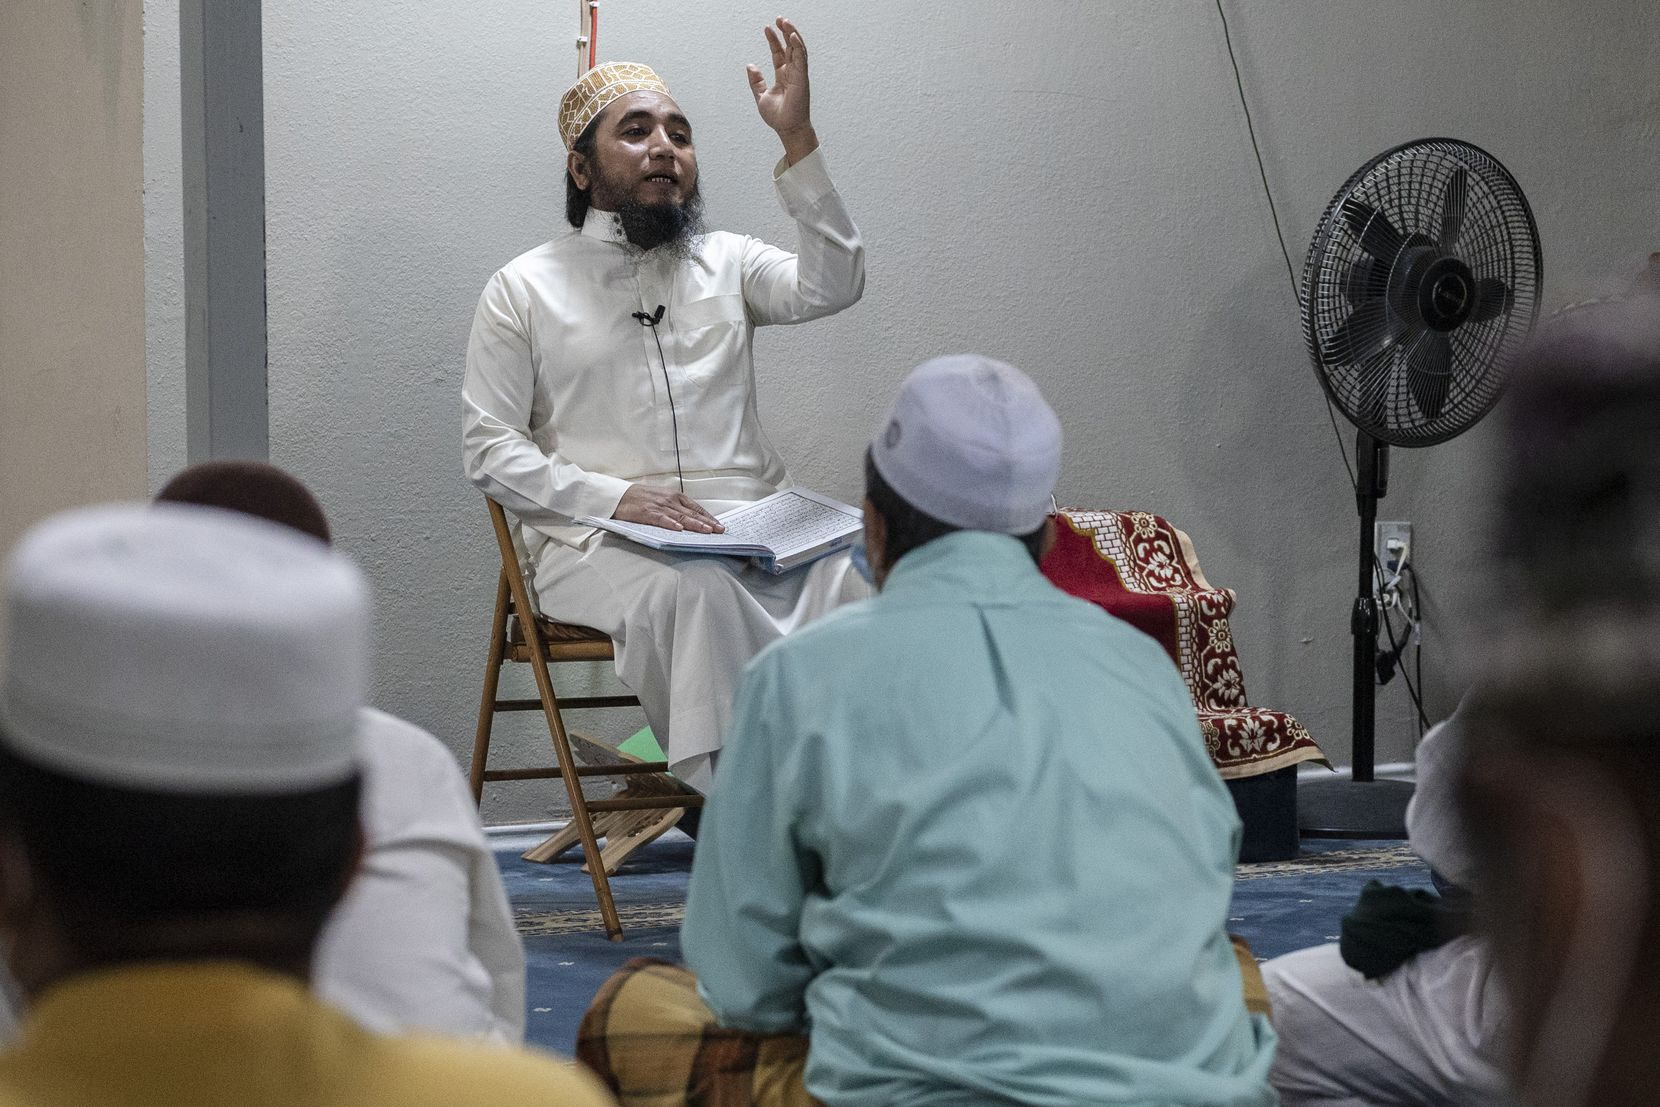 Mohammad Ismail, the imam, or leader of the mosque, spoke before conducting prayer with Rohingya refugees at an apartment complex in Dallas on July 23. The mosque was built inside a former laundry room for residents.